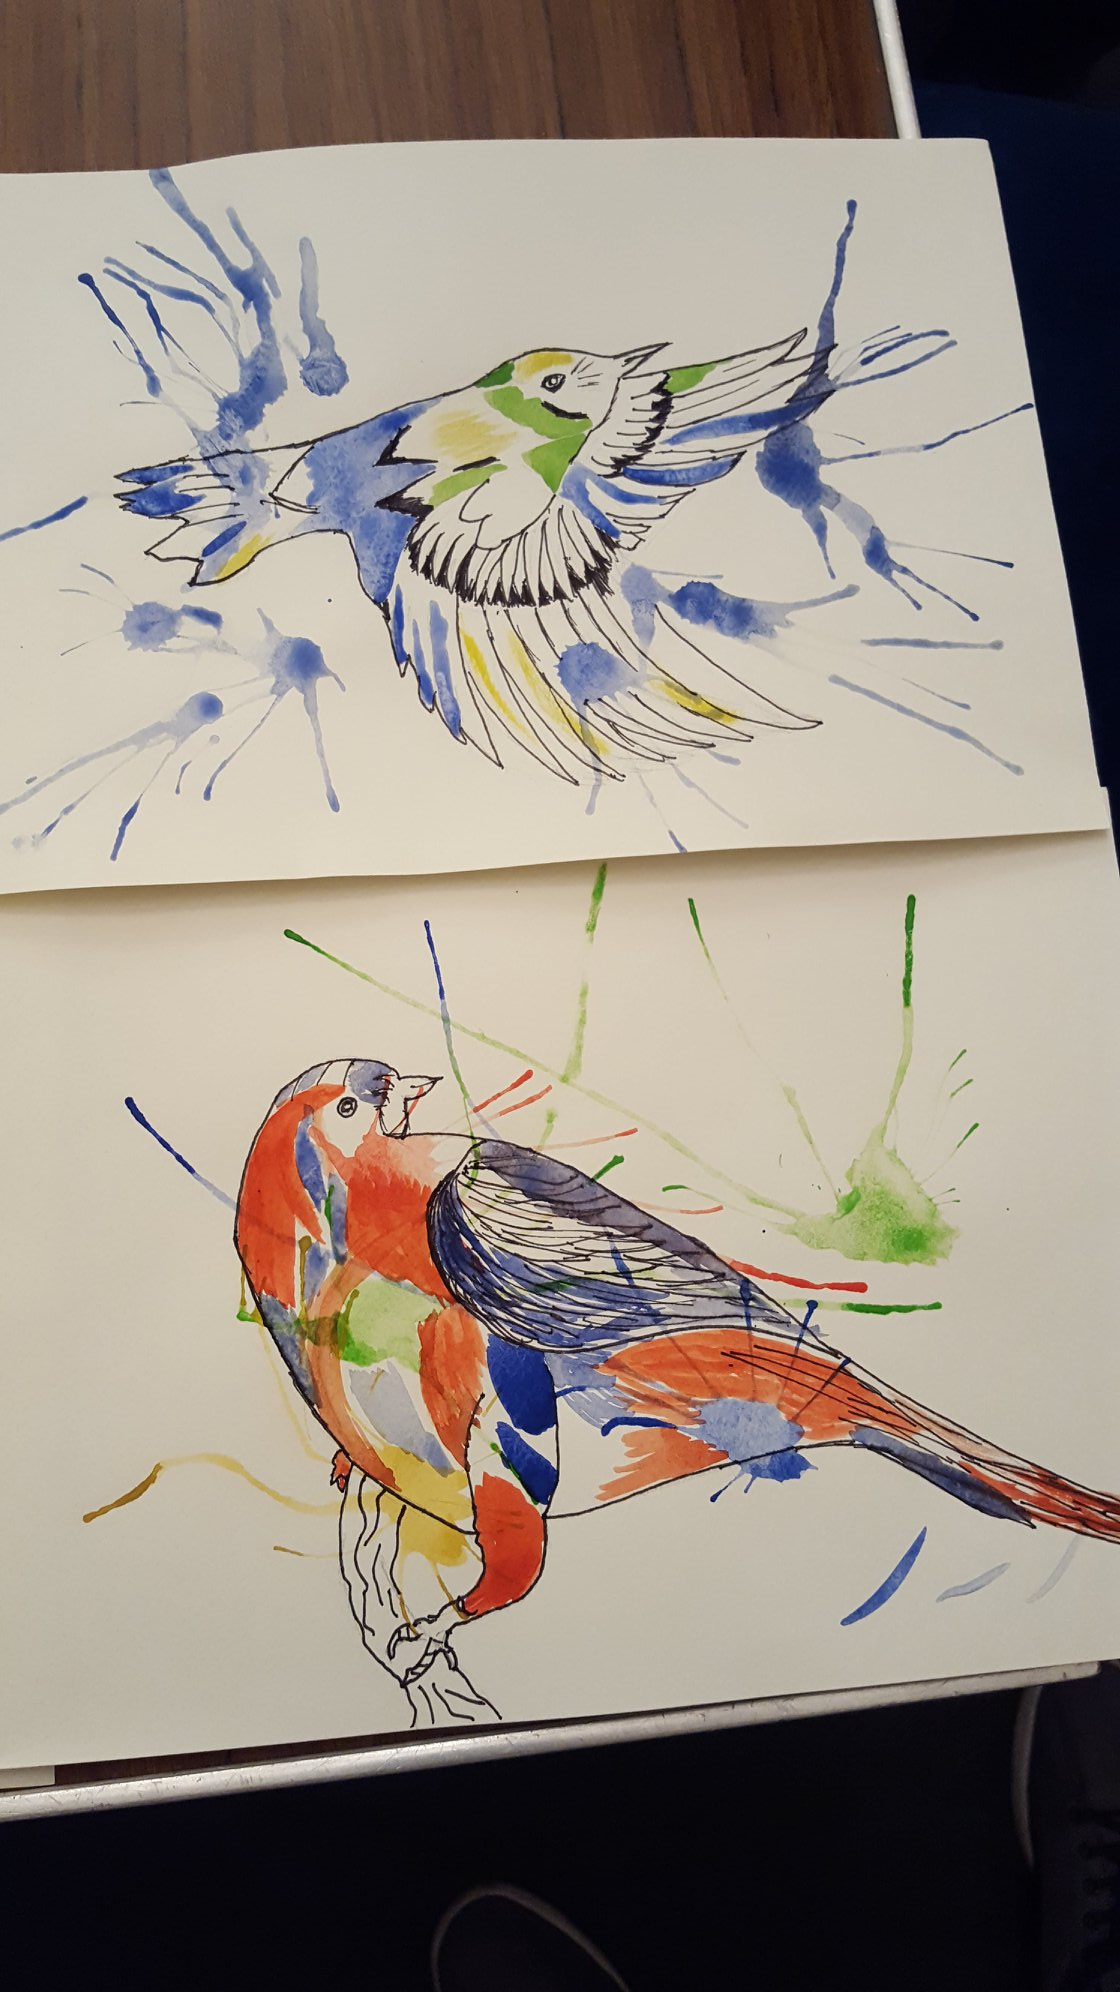 Pen and paint drawing of two birds